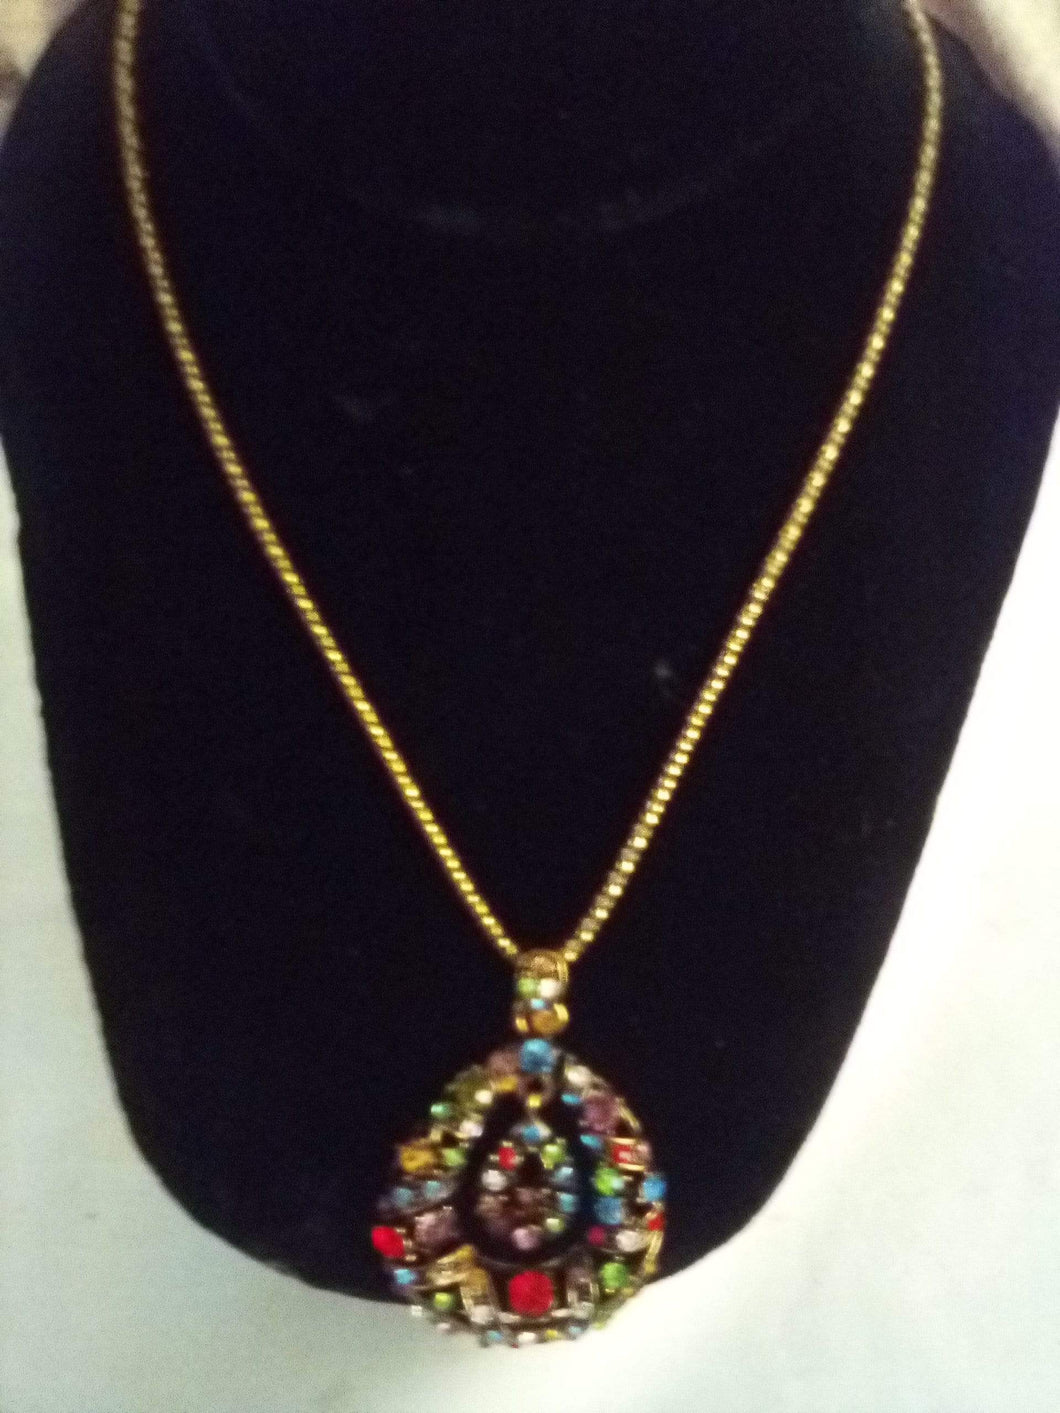 Beautiful necklace with chain and colorful pendent - B&P'sringsnthings